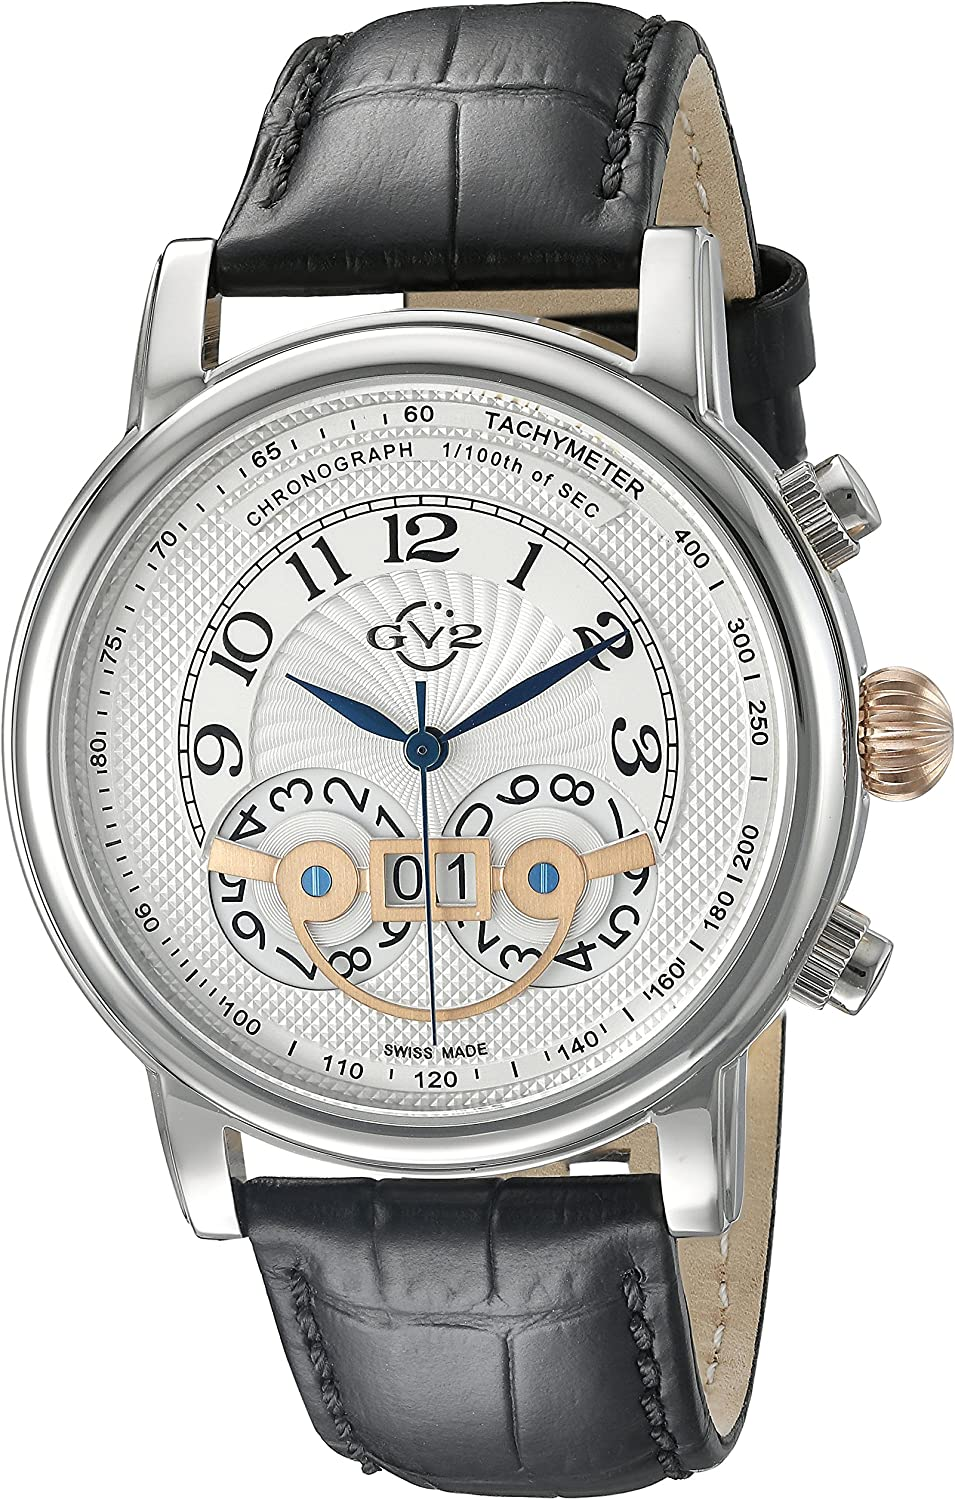 GV2 by Gevril Men s 8100 Montreux Analog Display Watch